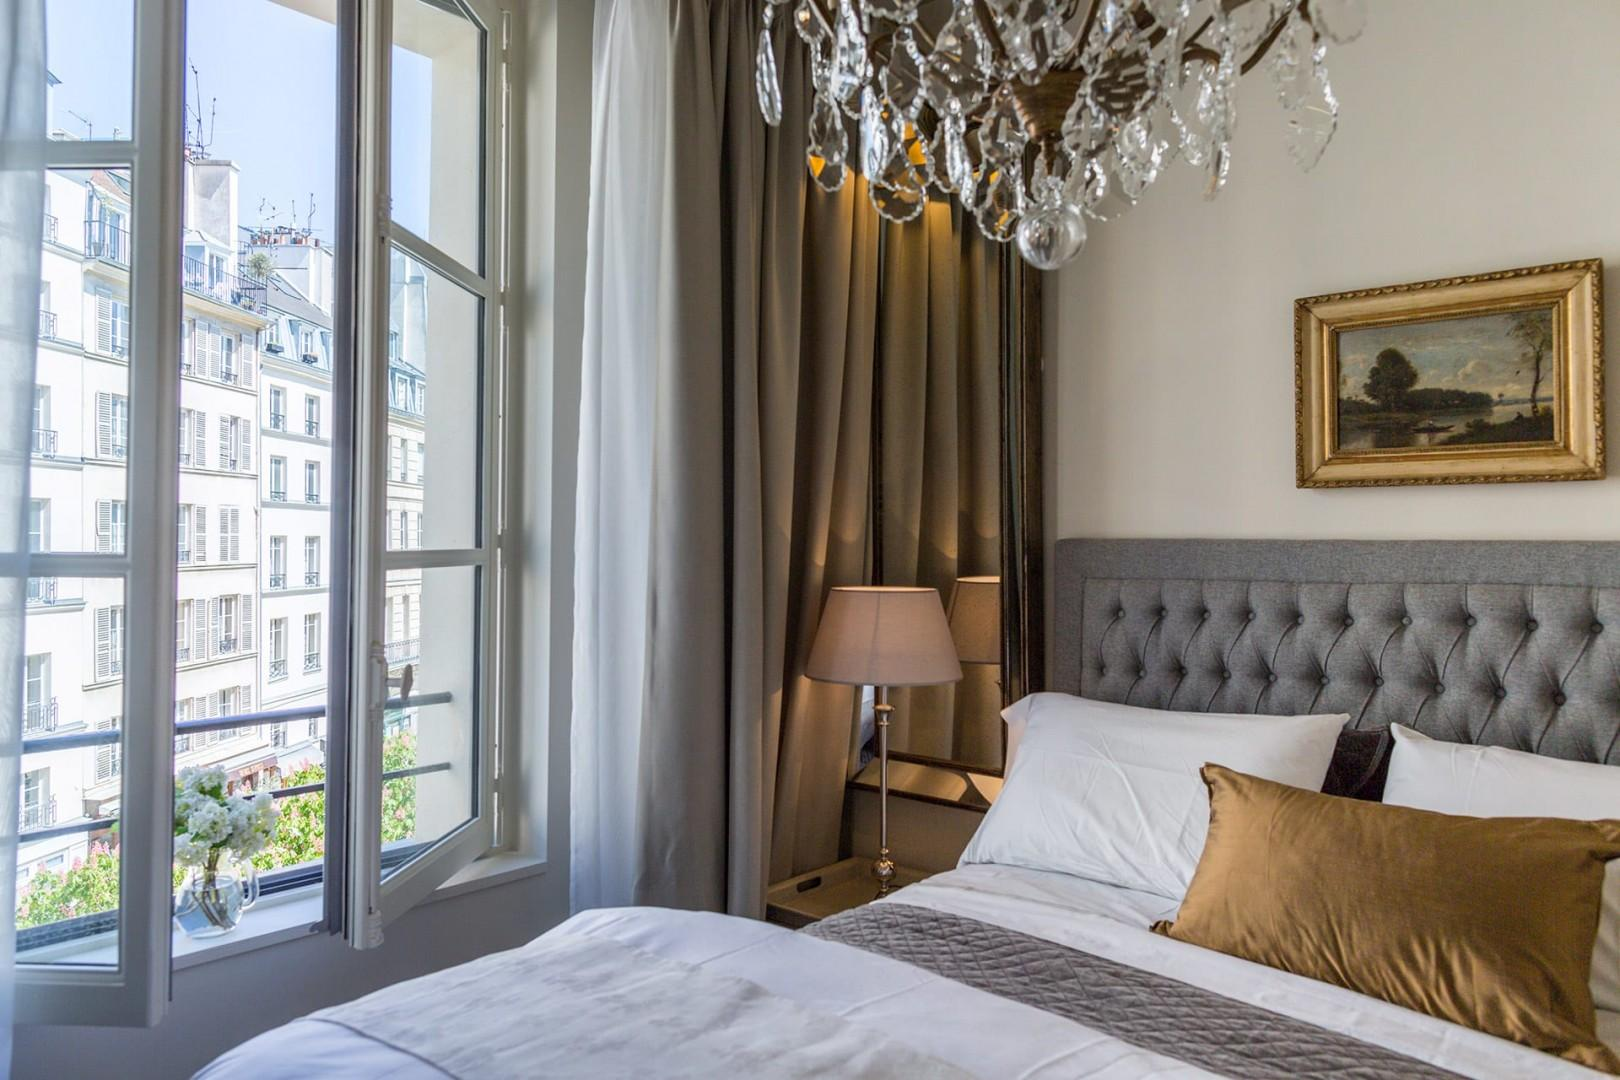 Wake up to the pretty views of Place Dauphine from the bedroom window.